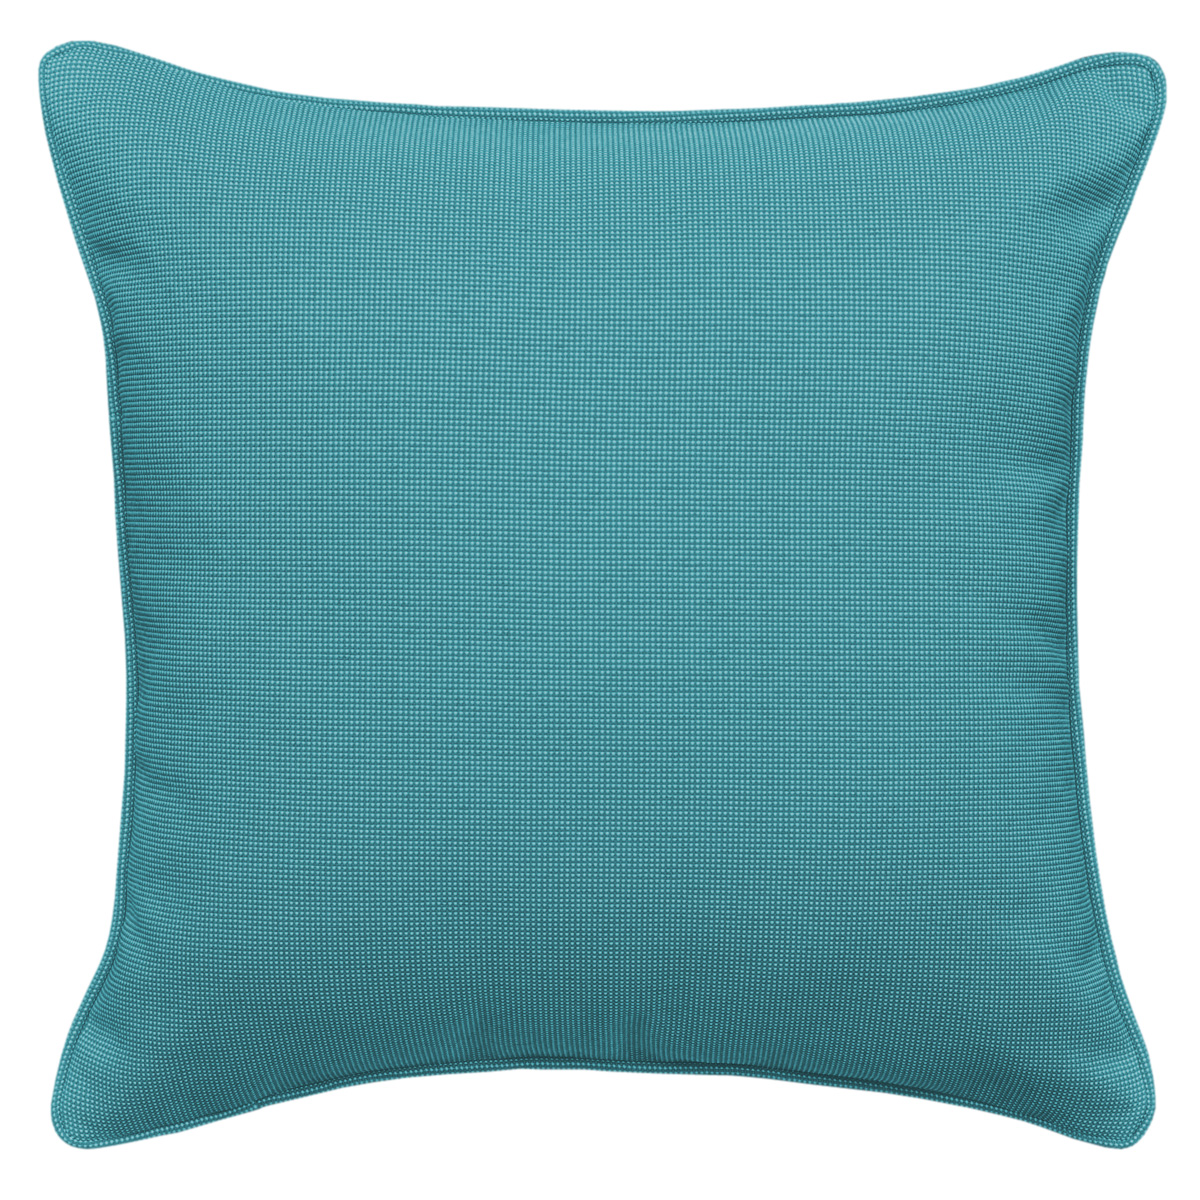 Noosa Turquoise Outdoor Cushion - 45x45cm